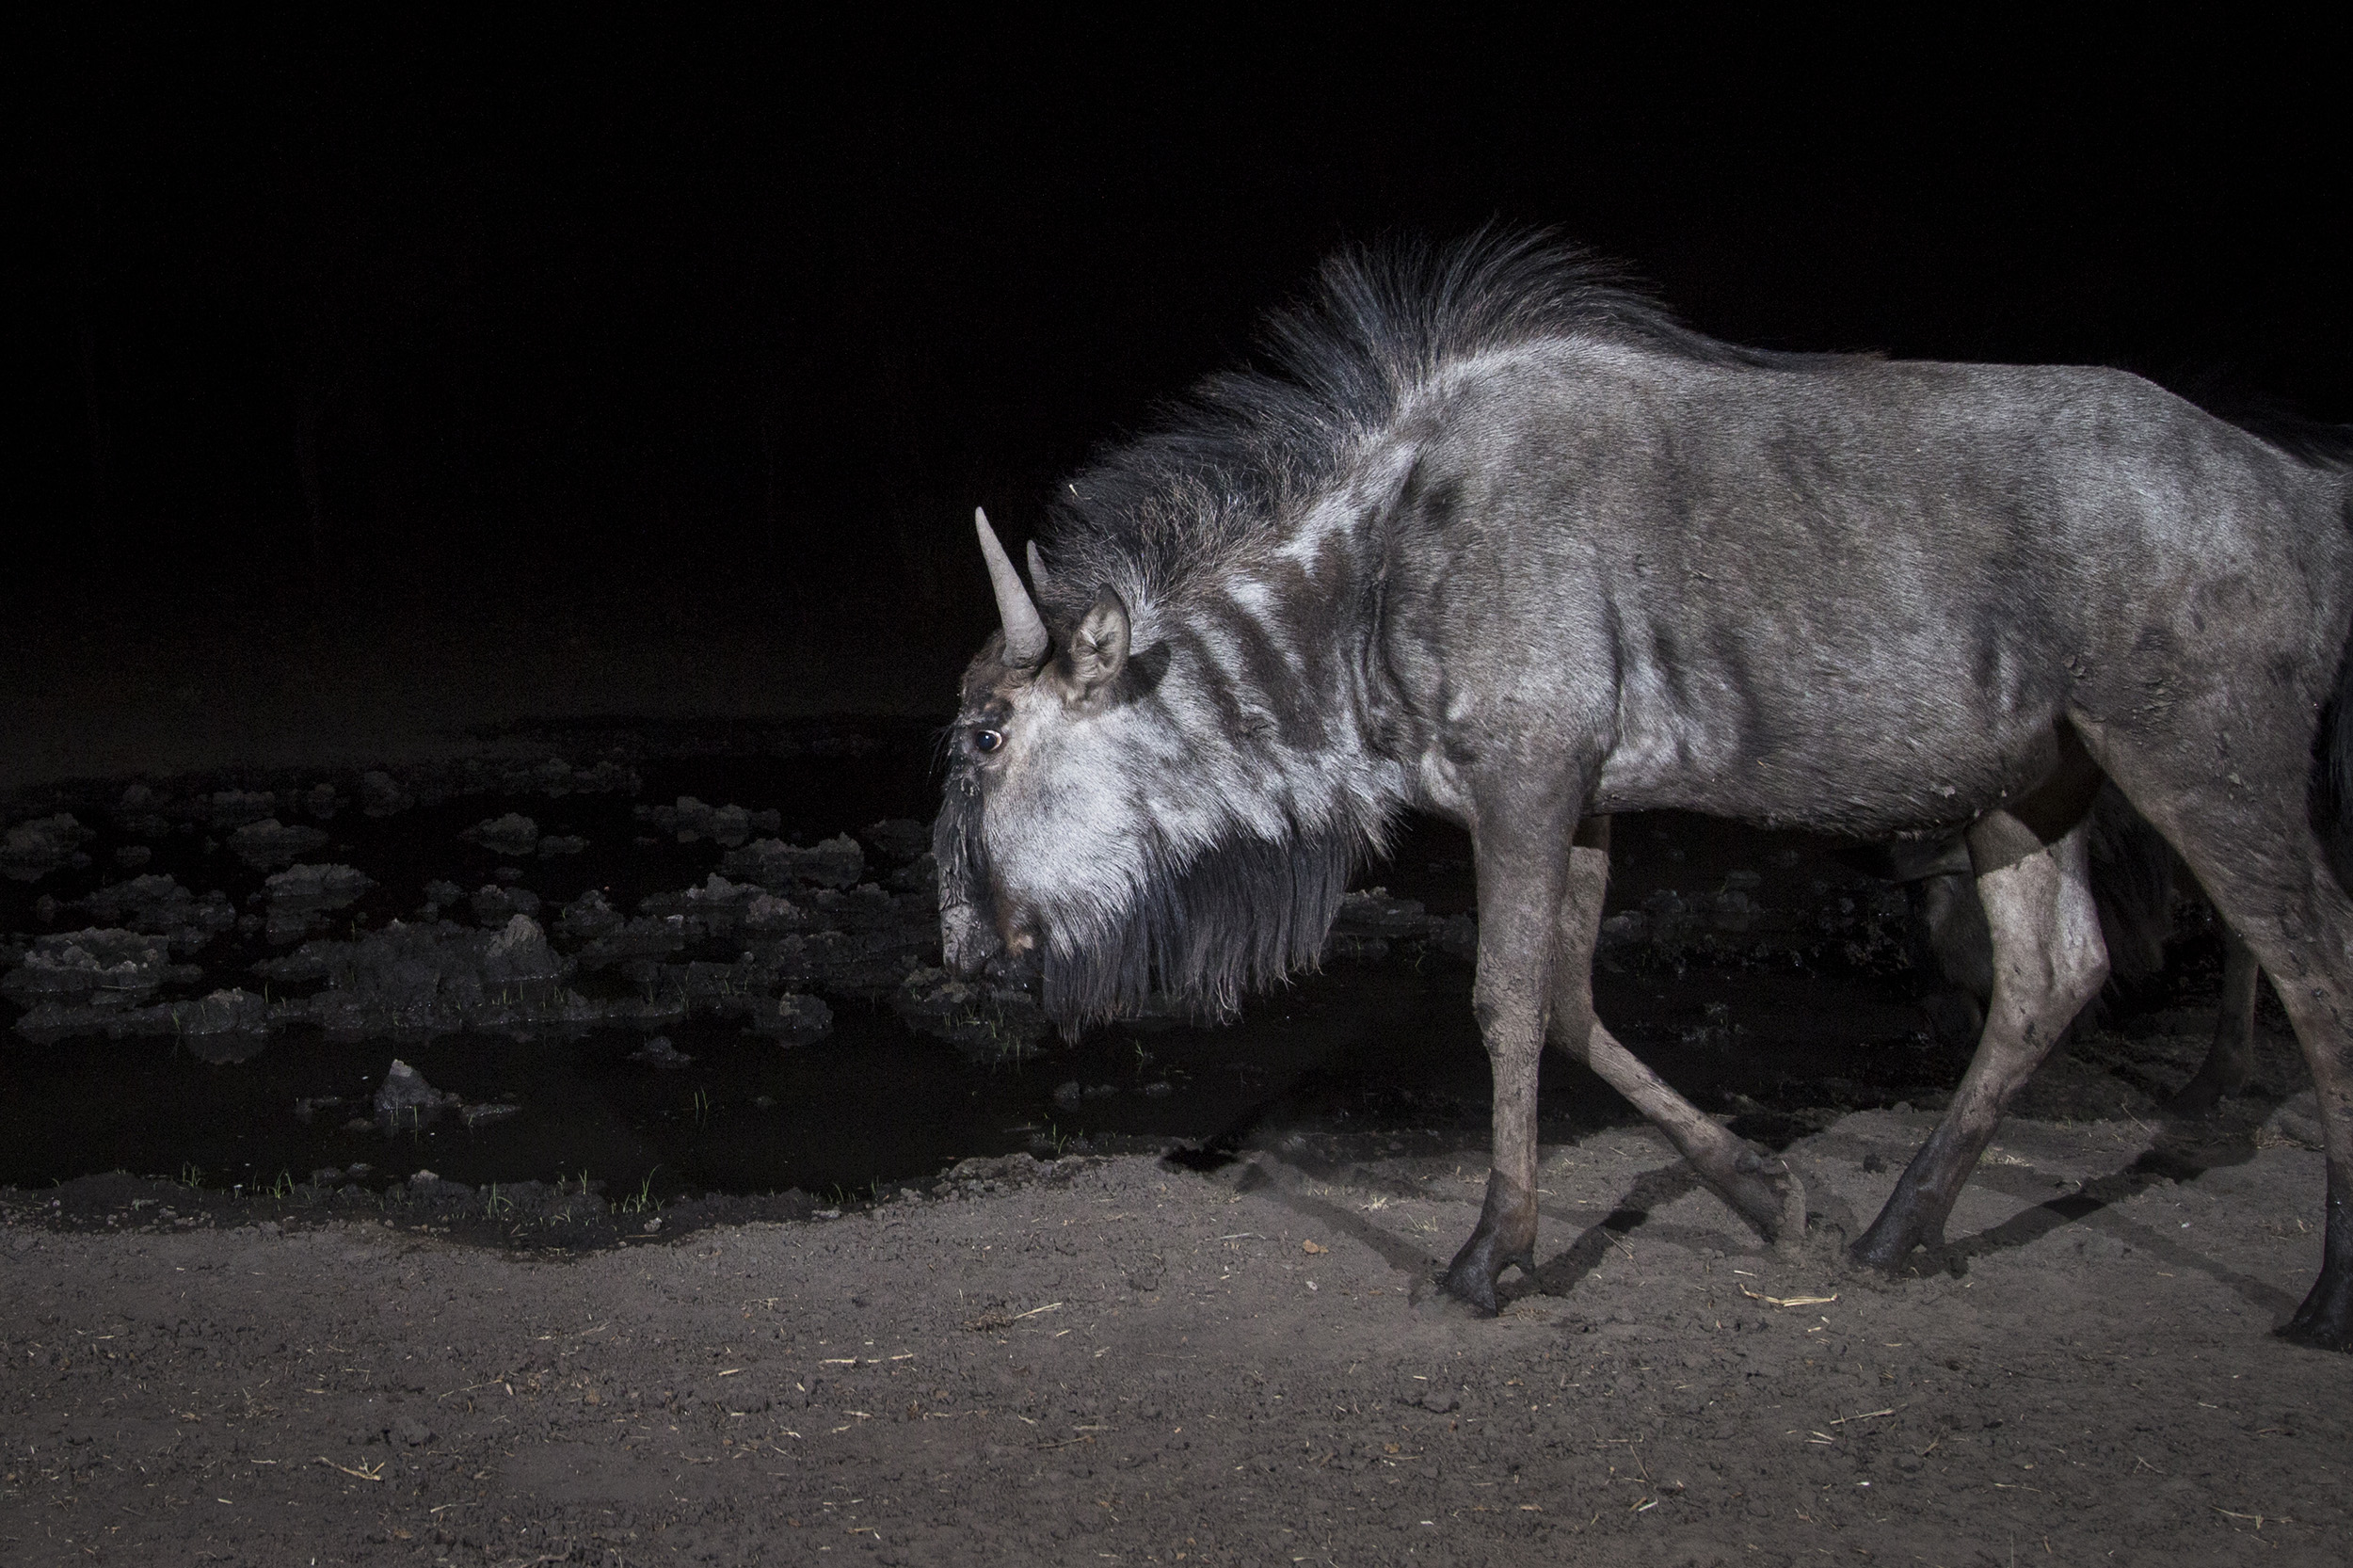 A camera trap image of a wildebeest using Camtraptions PIR motion sensor.